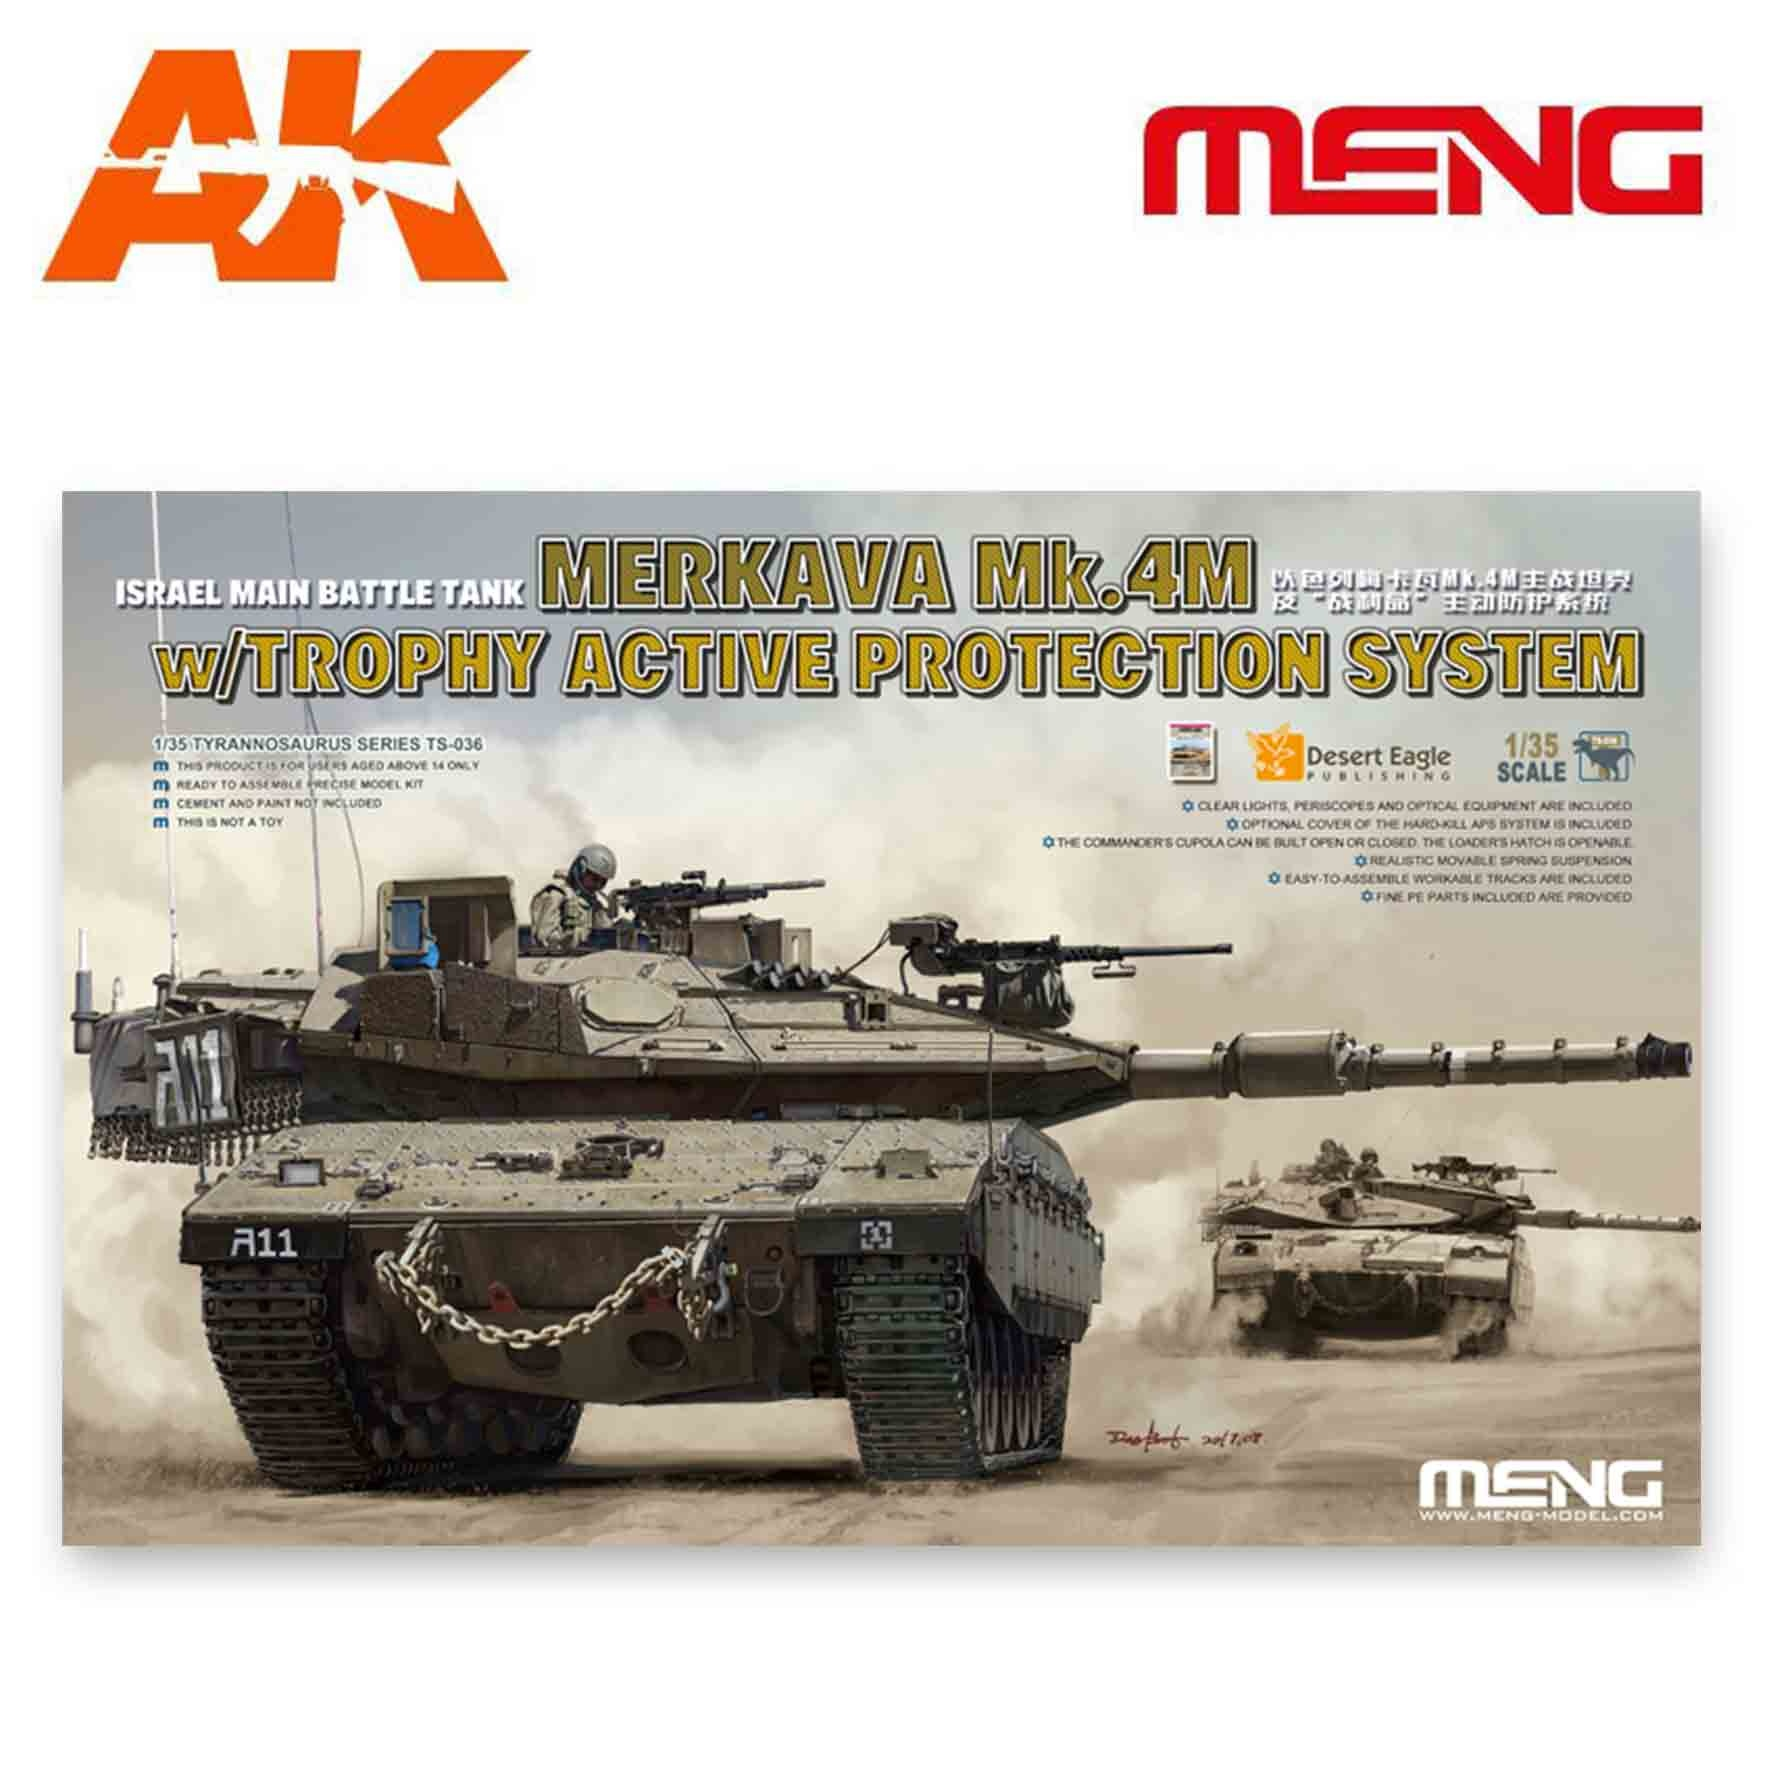 Meng Models Israel Main Battle Tank Merkava Mk.4M w/Trophy Active Protection System - Scale 1/35 - Meng Models - MM TS-036